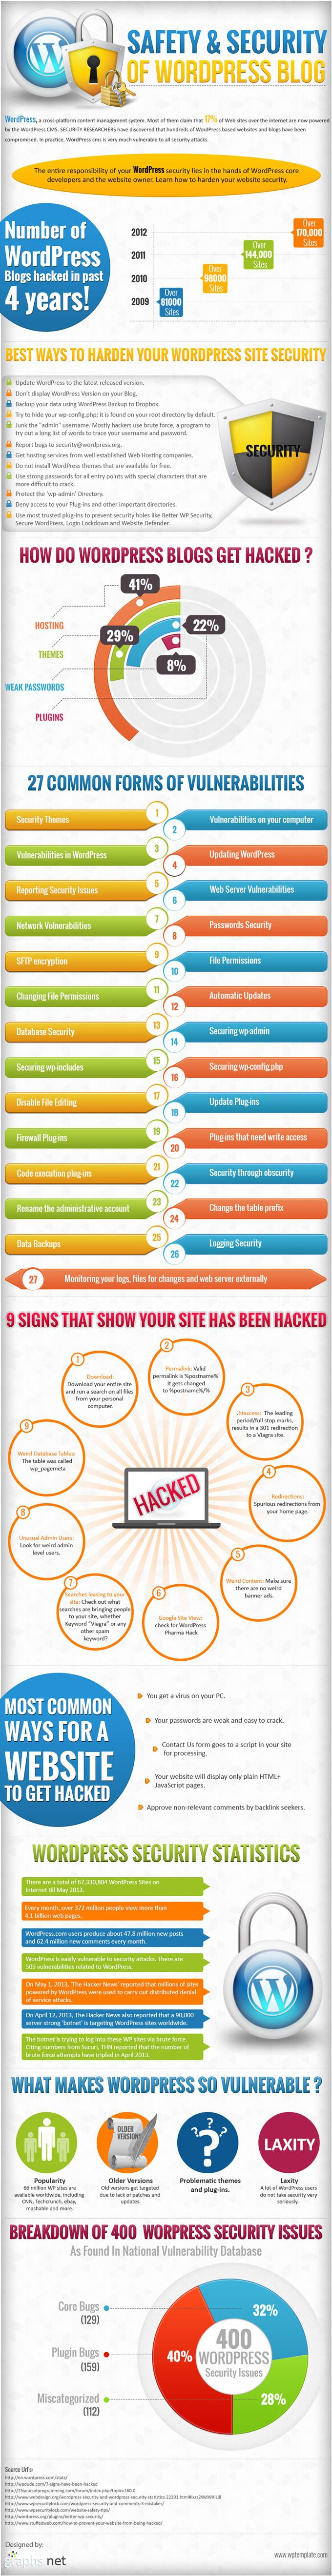 #INFOgraphic > Wordpress Security Threats: Though WordPress has managed to enter the mainstream of web development and stride to the forefront of CMS, that doesnt mean that its invulnerable. Here you see an overview of the most common vulnerabilities, security holes and hacking practices for wordpress based sites and blogs... > http://infographicsmania.com/wordpress-security-threats/